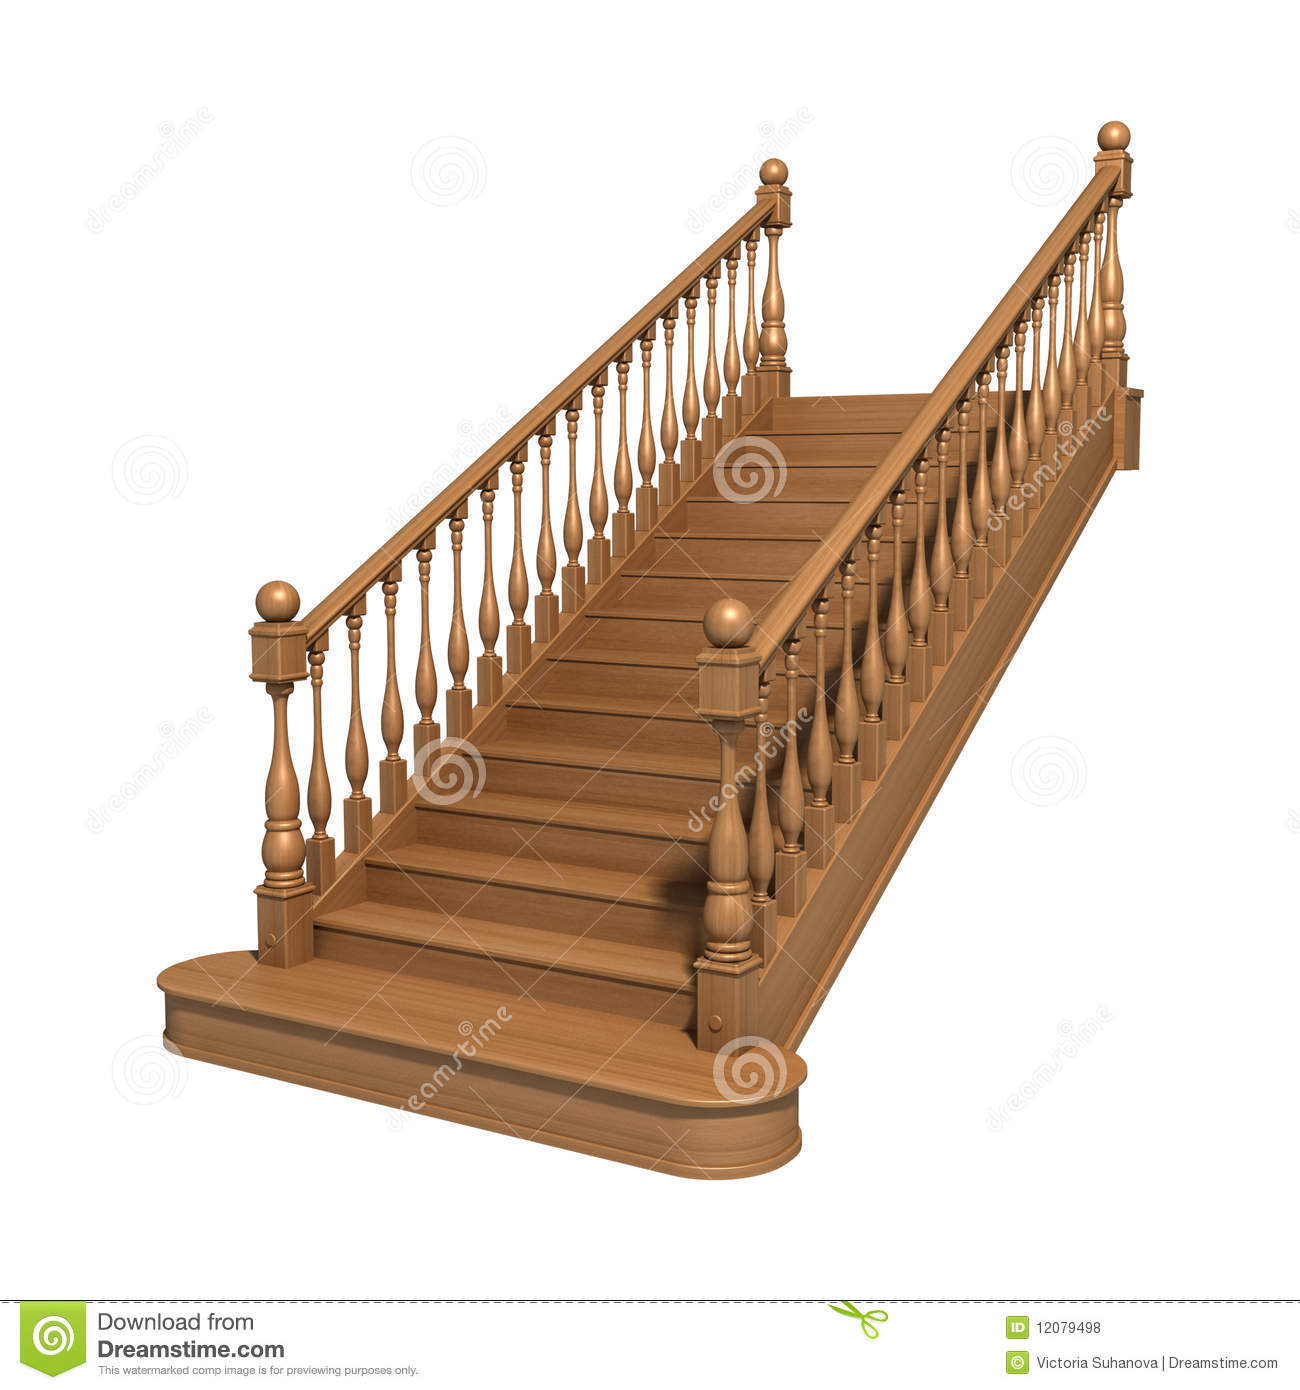 wood stairs clipart clipground star clip art black and white stairs clipart cartoon